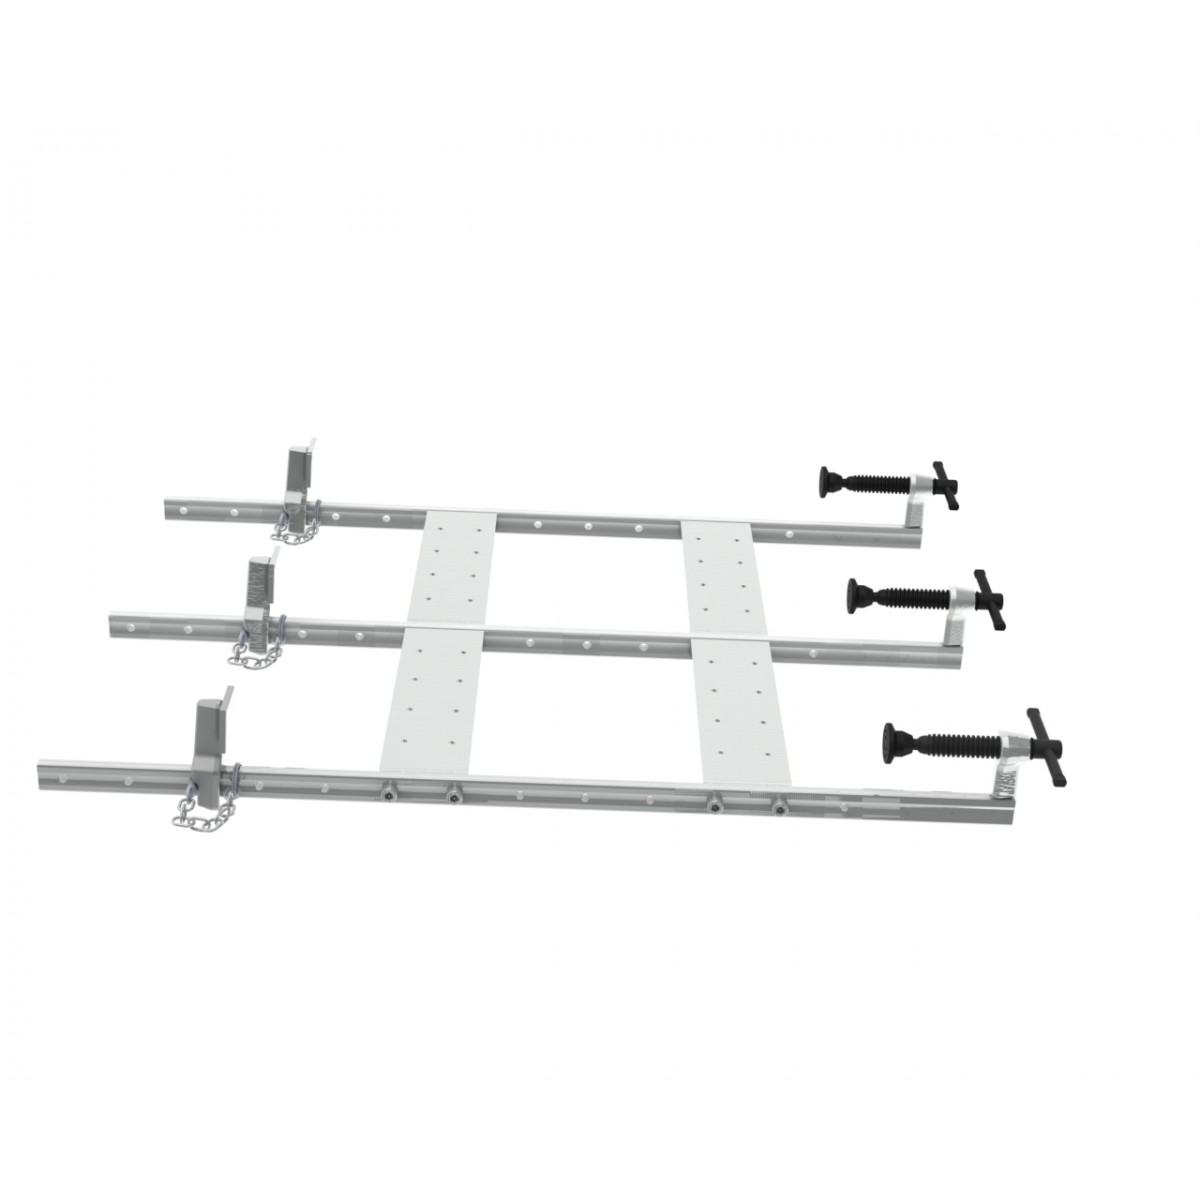 SUMMIT® set of professional gluing clamps - low profile